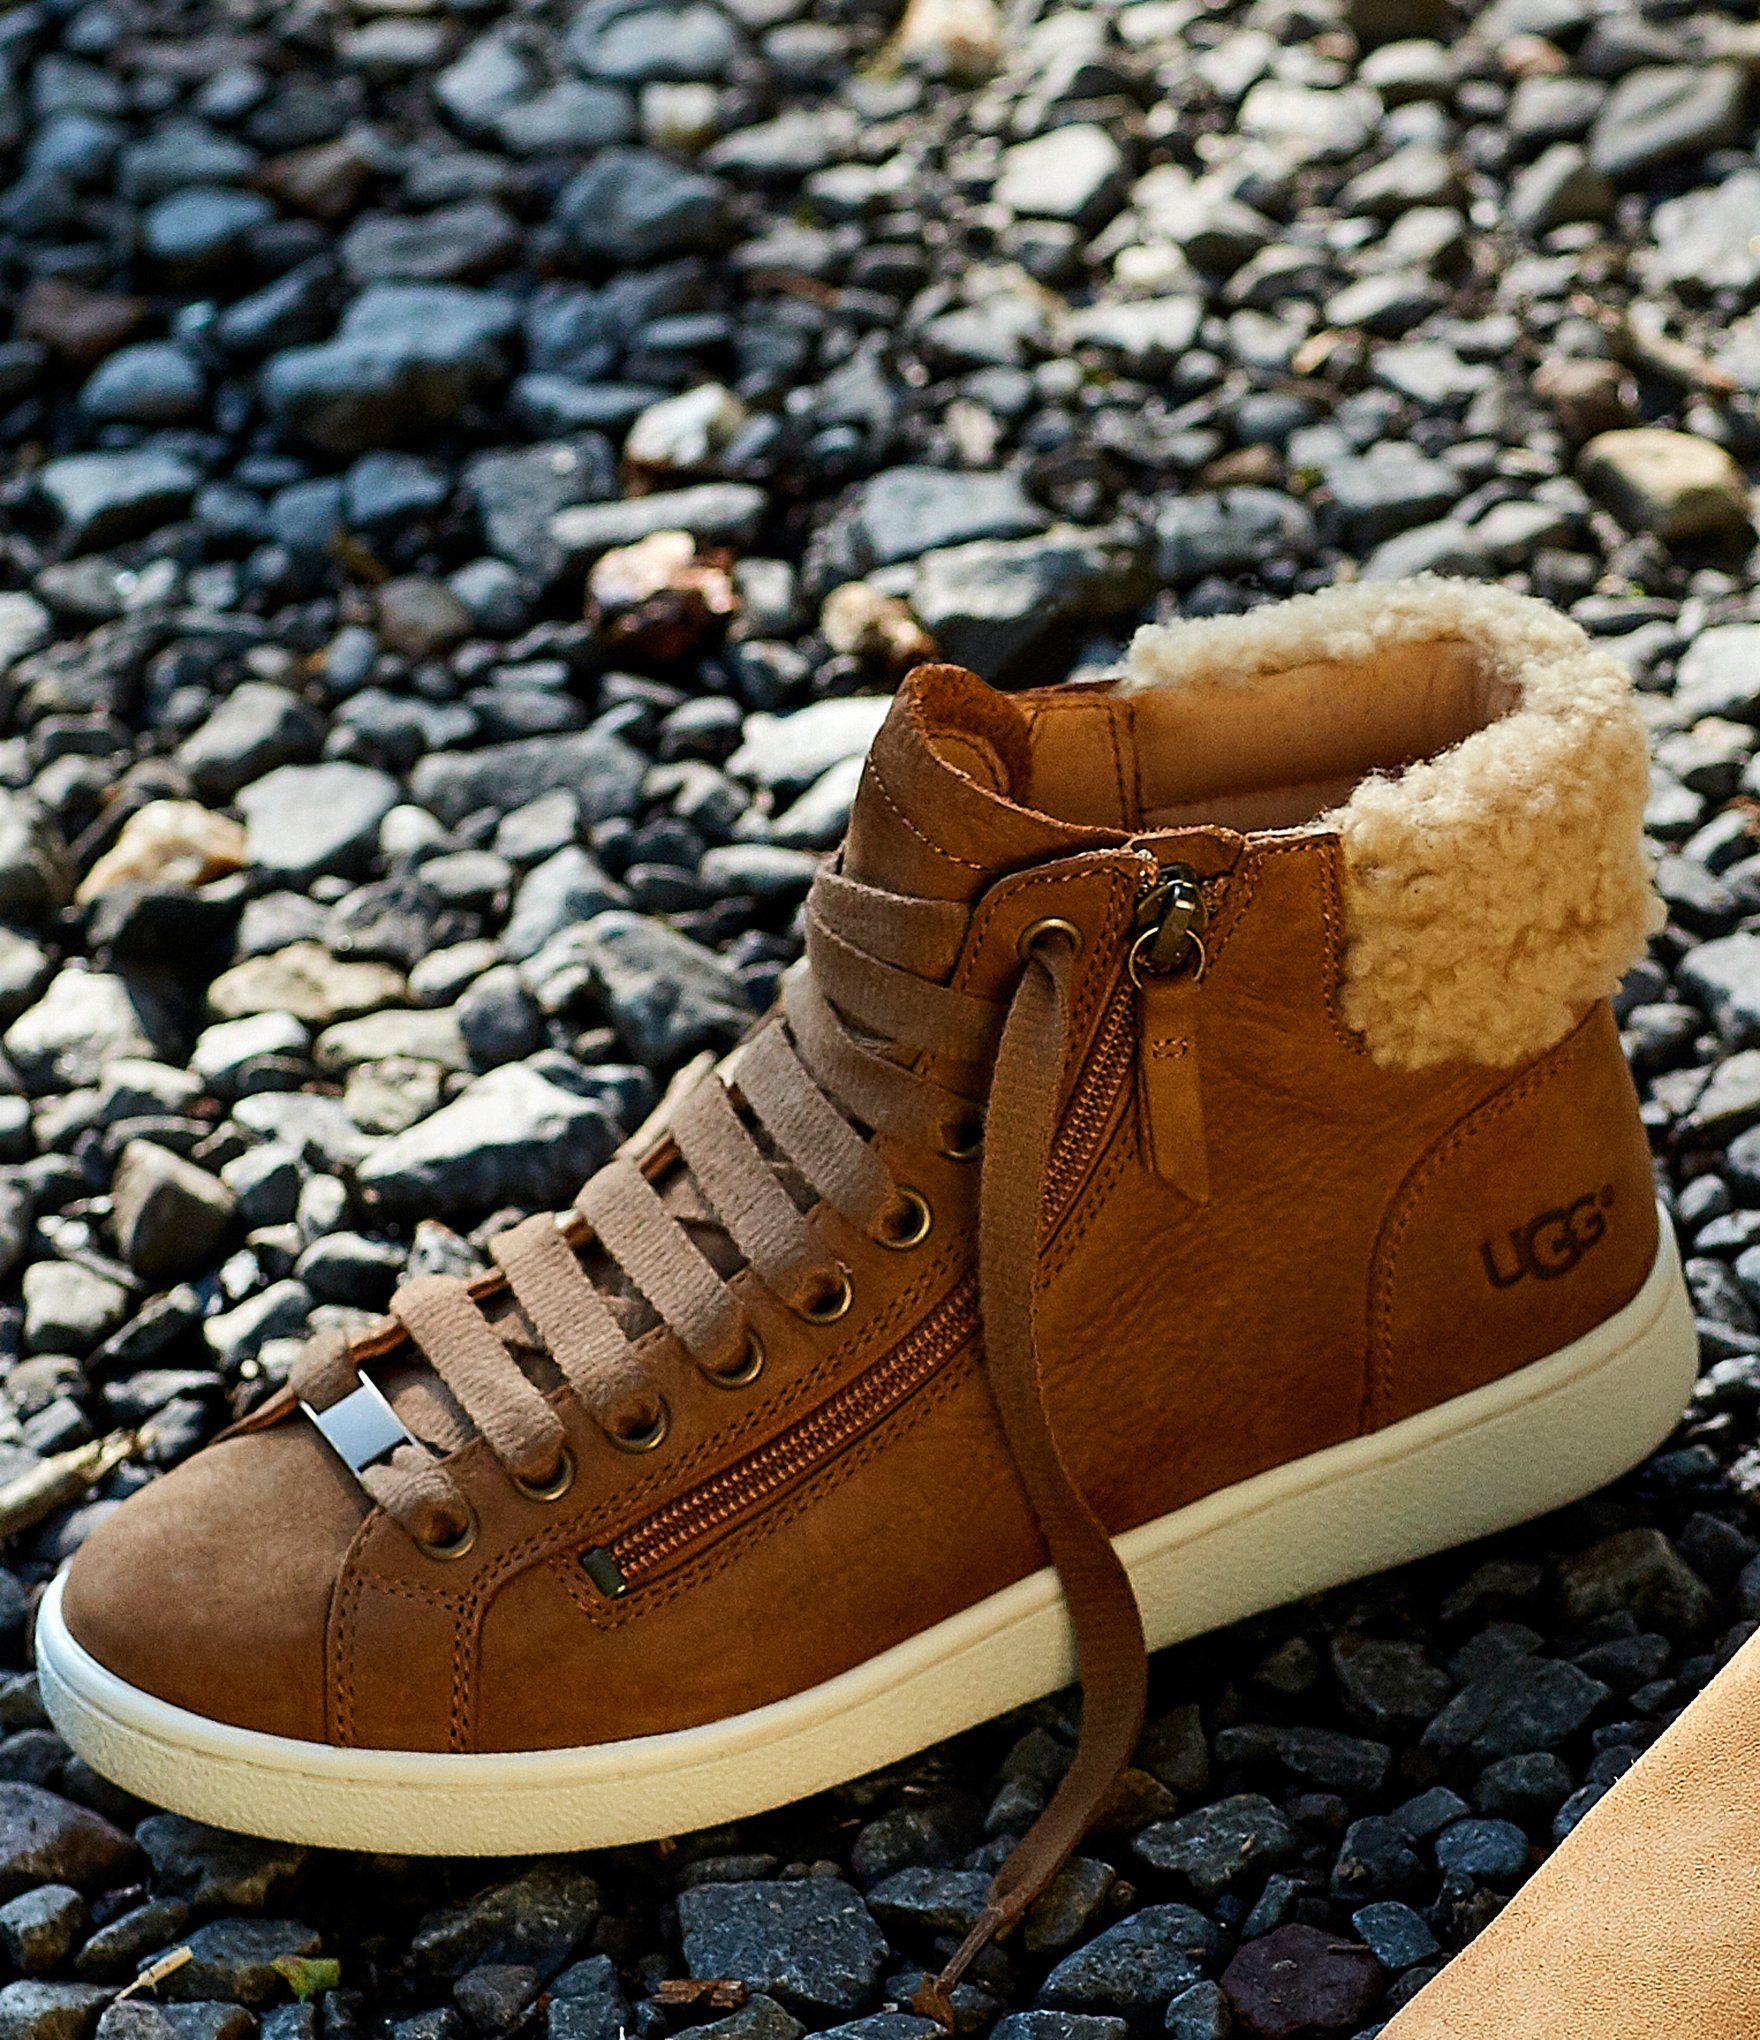 Ugg boots outfit, Ugg sneakers